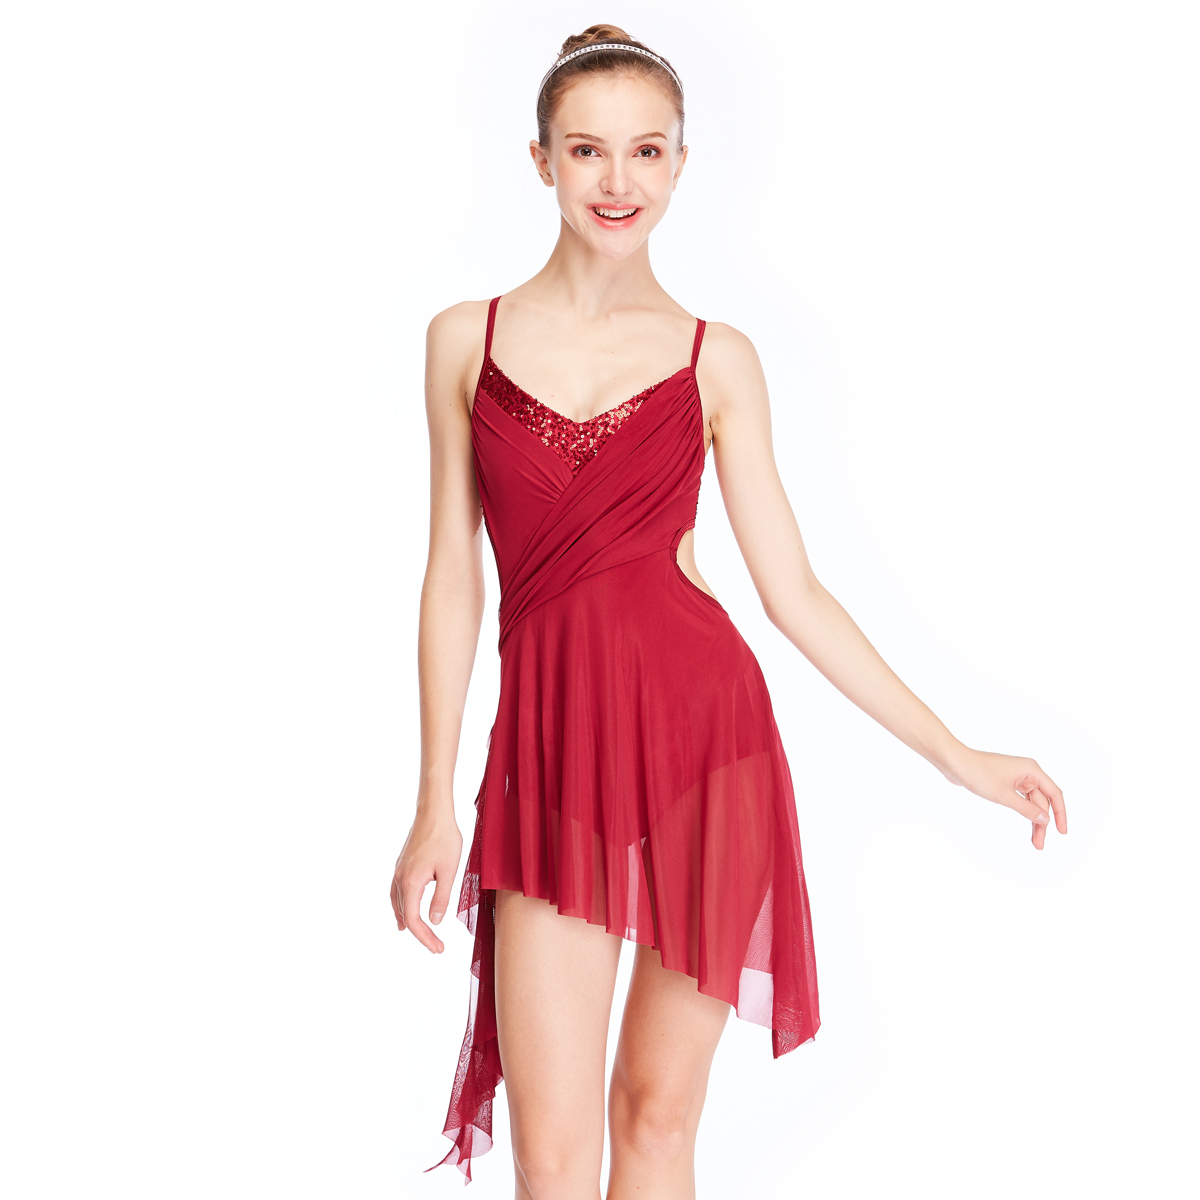 d43915c42056a MiDee Modern Stage Performance Costumes Lyrical Ballet Dance Dress For Girls